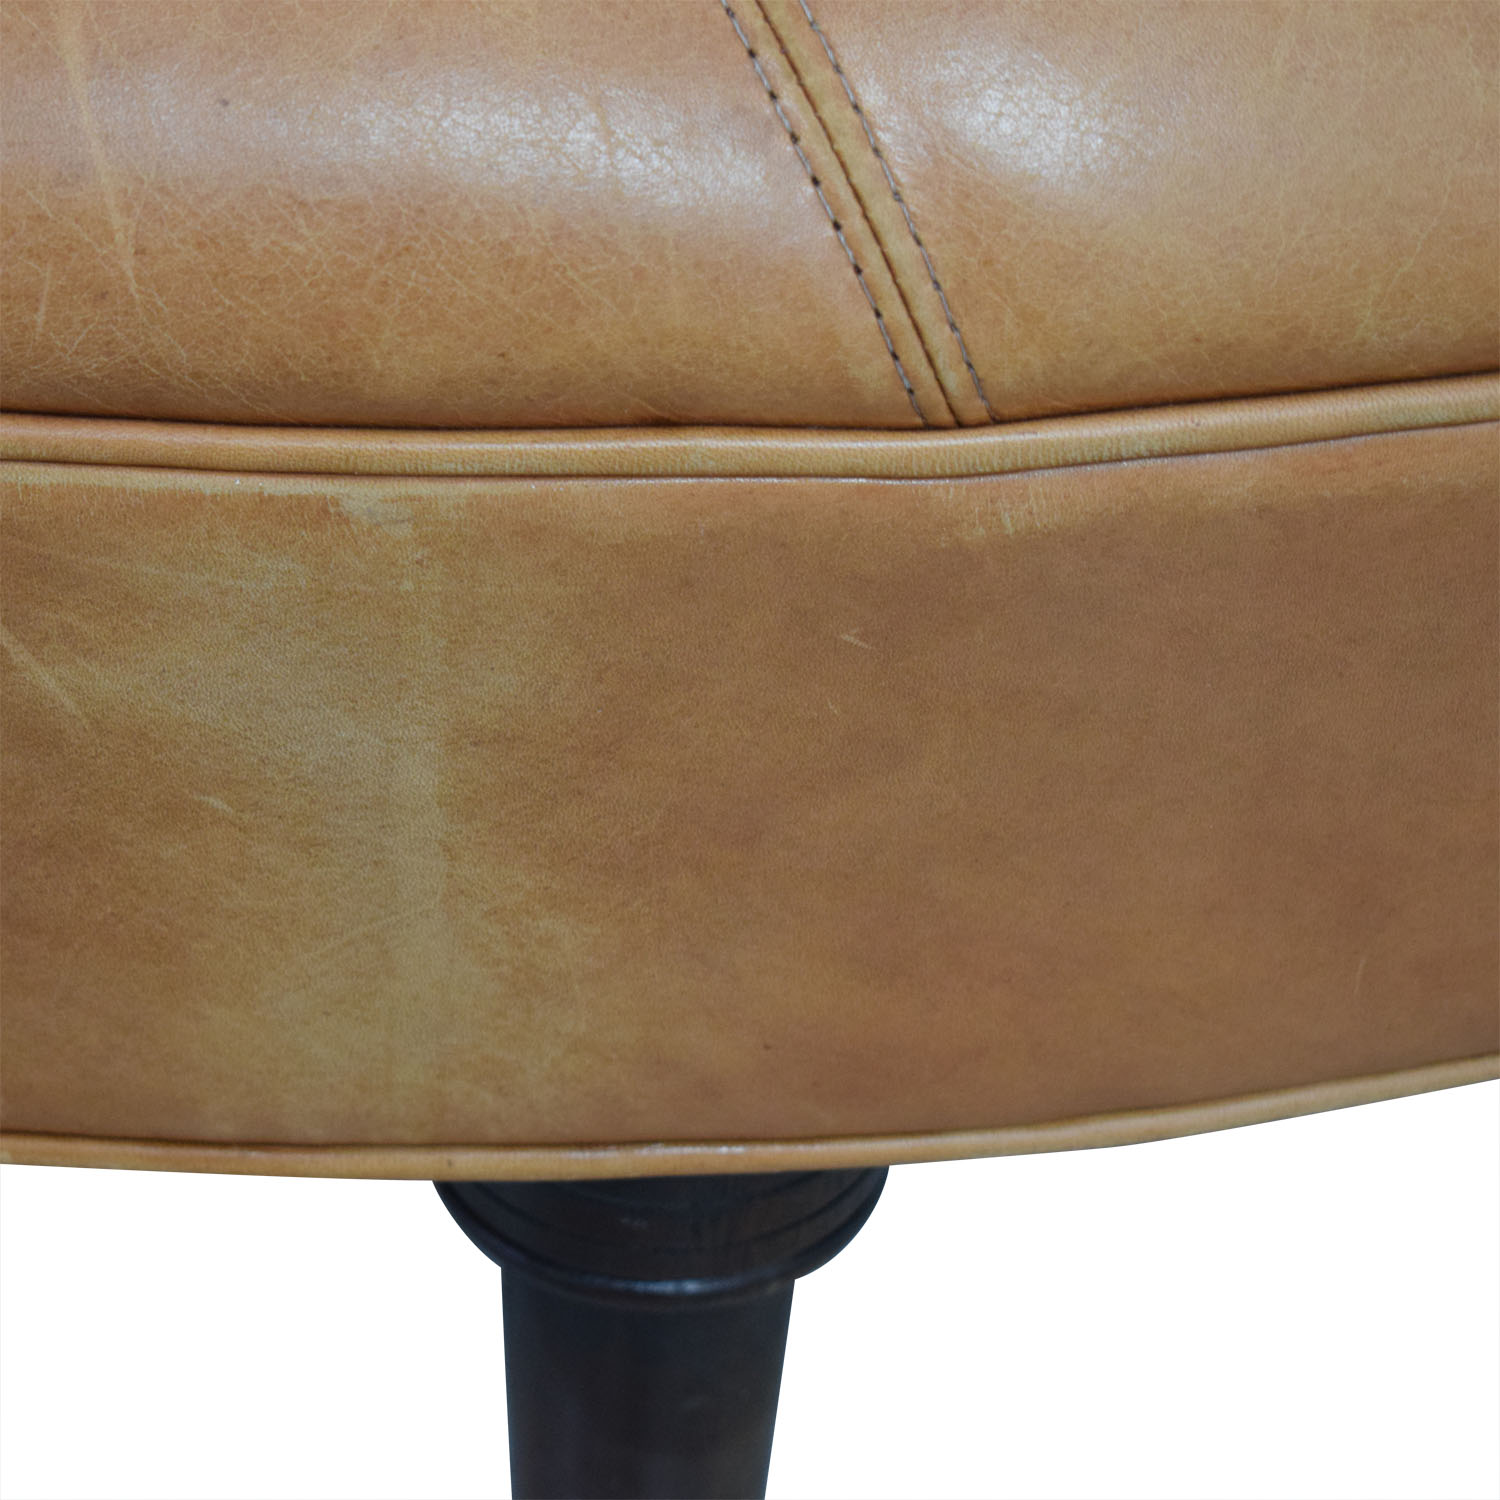 Phenomenal 90 Off Oval Cognac Leather Ottoman Chairs Uwap Interior Chair Design Uwaporg